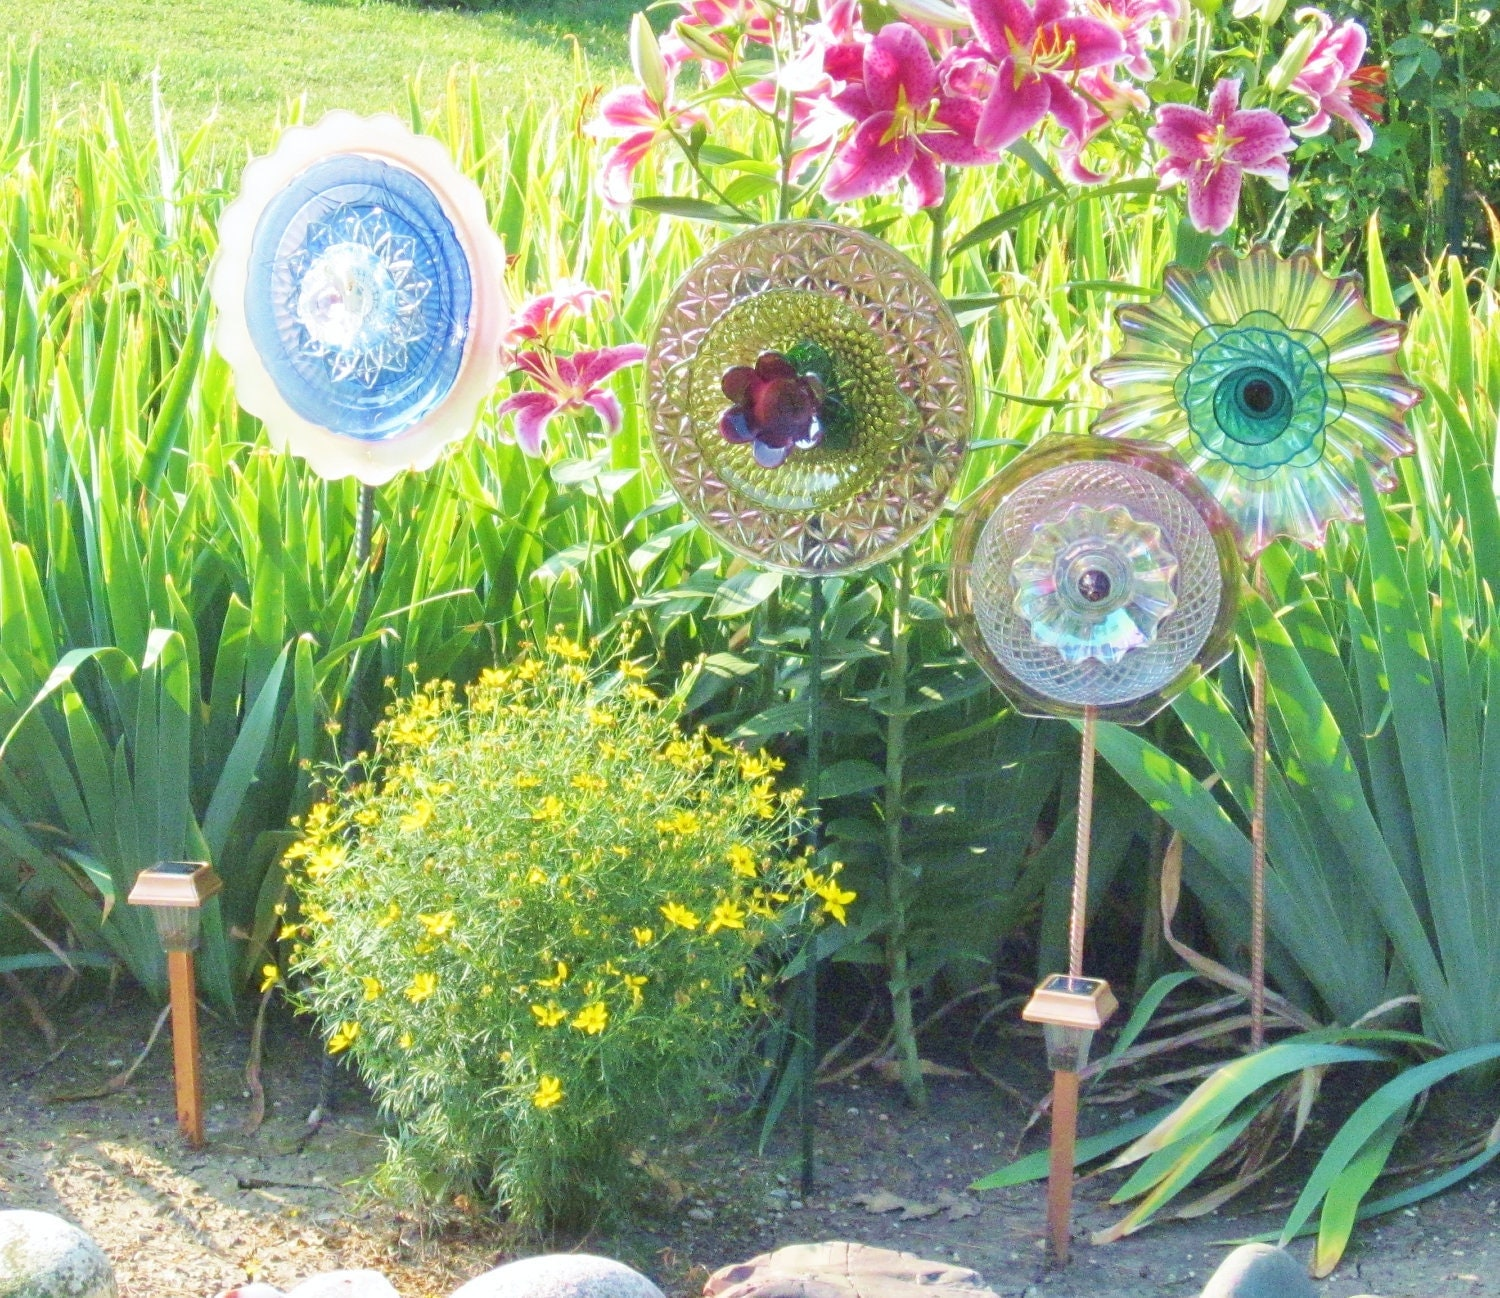 Lawn and garden decorative accessories garden decoration for Garden decoration ideas